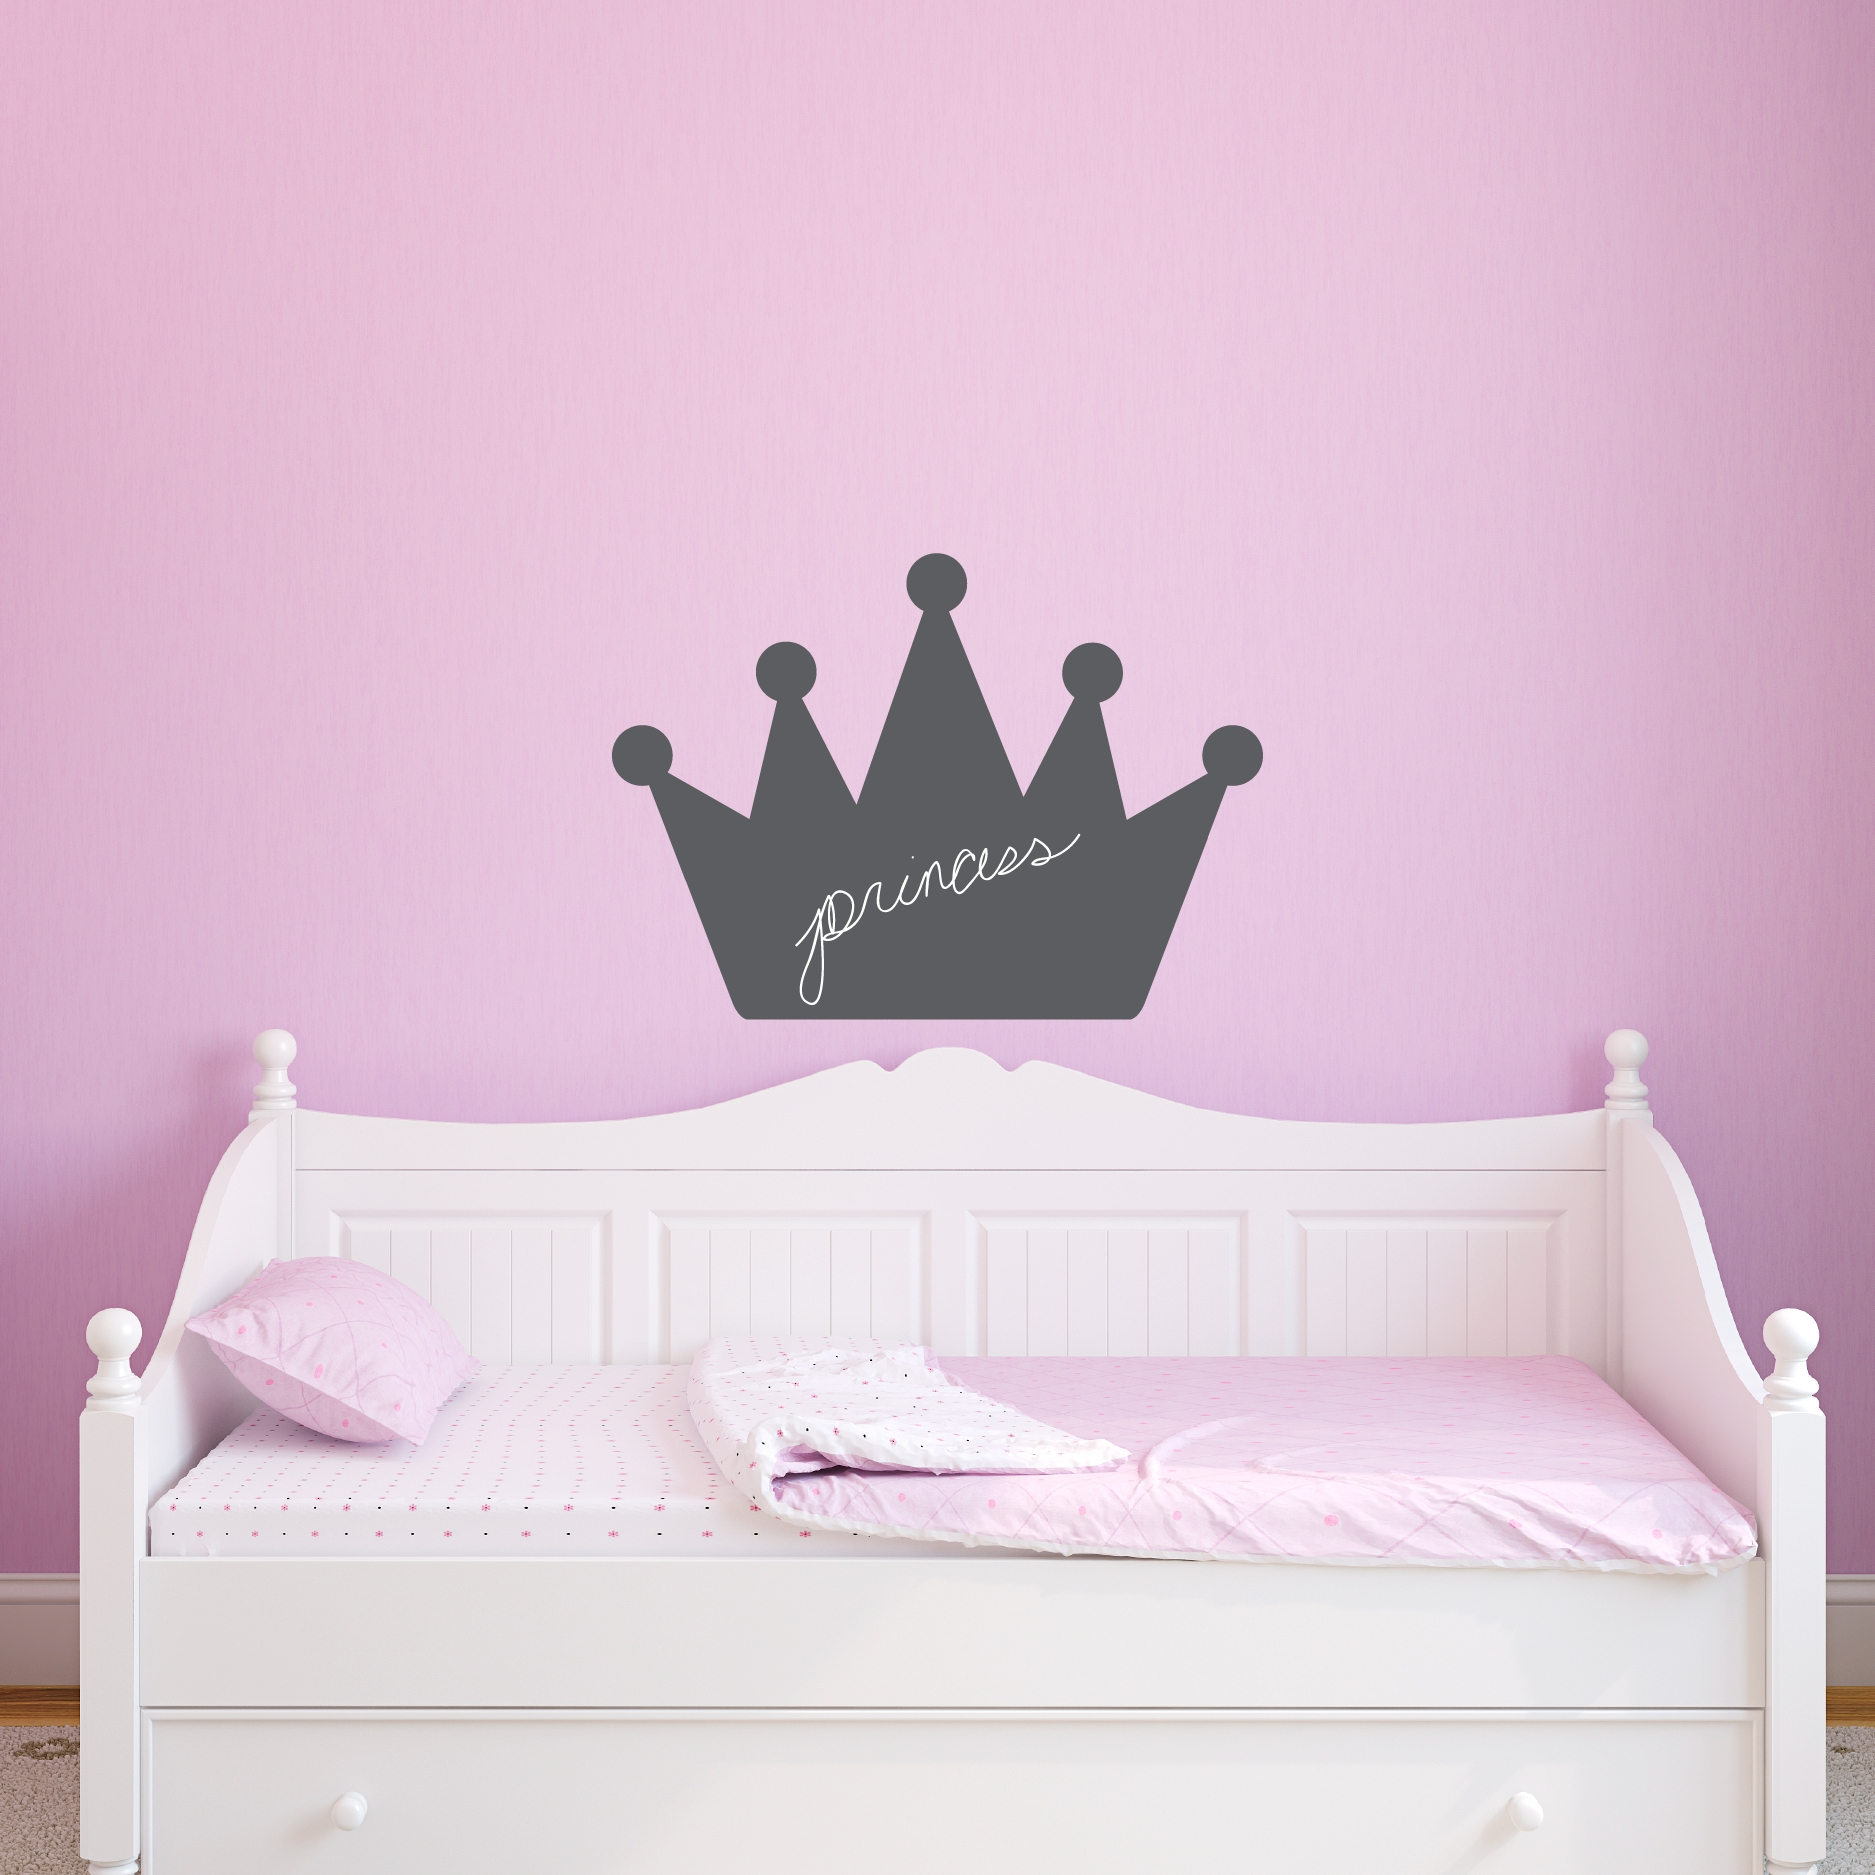 Chalkboard Princess Crown Wall Quotes™ Art Decal | Wallquotes Inside Most Recently Released Princess Crown Wall Art (View 6 of 25)